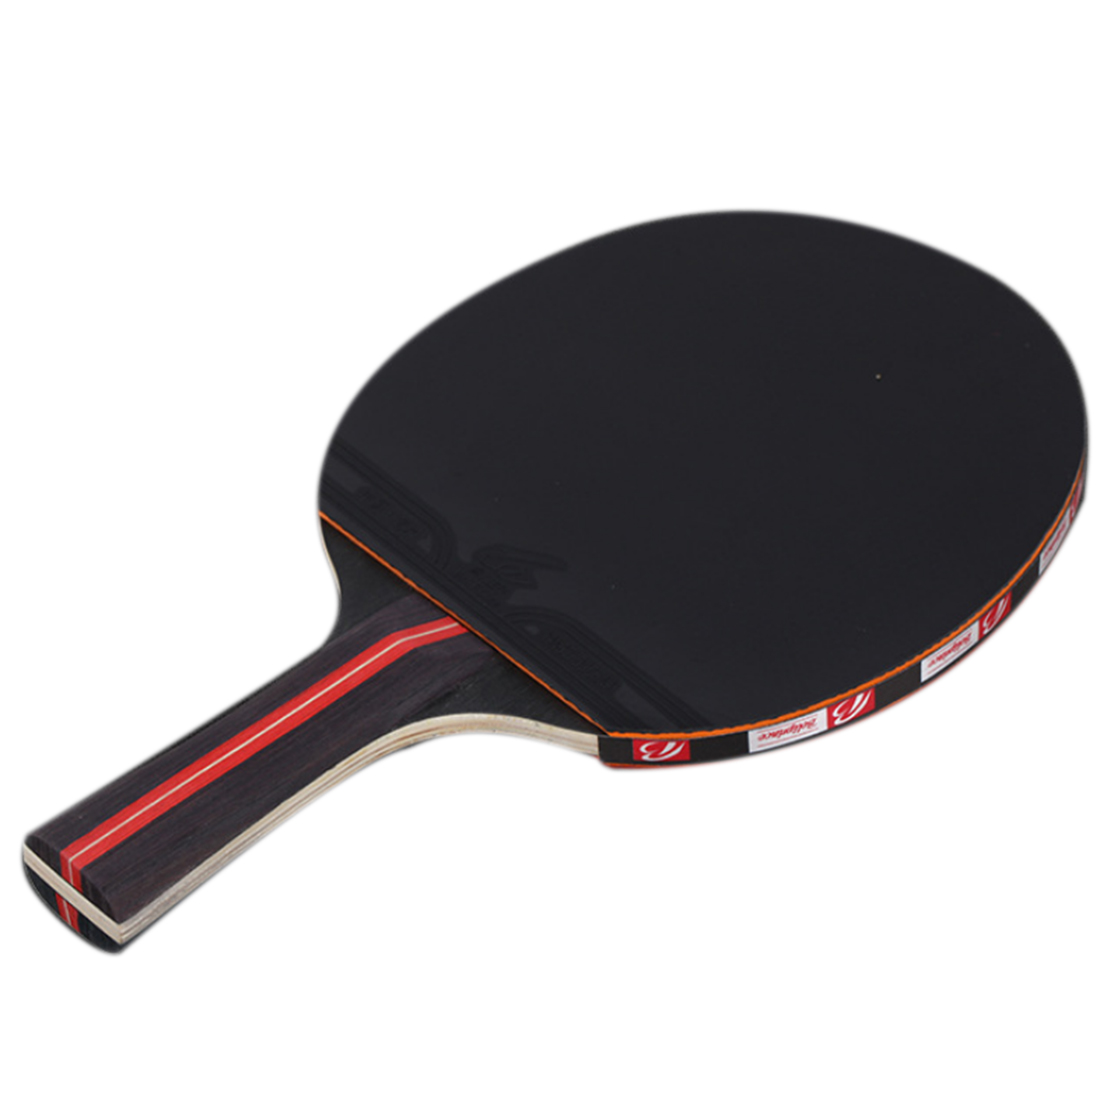 Table Tennis Tips and Tricks. Mix up serves of different length and spin. Some examples of advanced serves include medium-long, deep, short, down-the-line, pure spin, pure speed, etc. Serves to the elbow tend to be very effective, since the receiver must quickly decide (and often does not in time) to use a forehand or backhand.